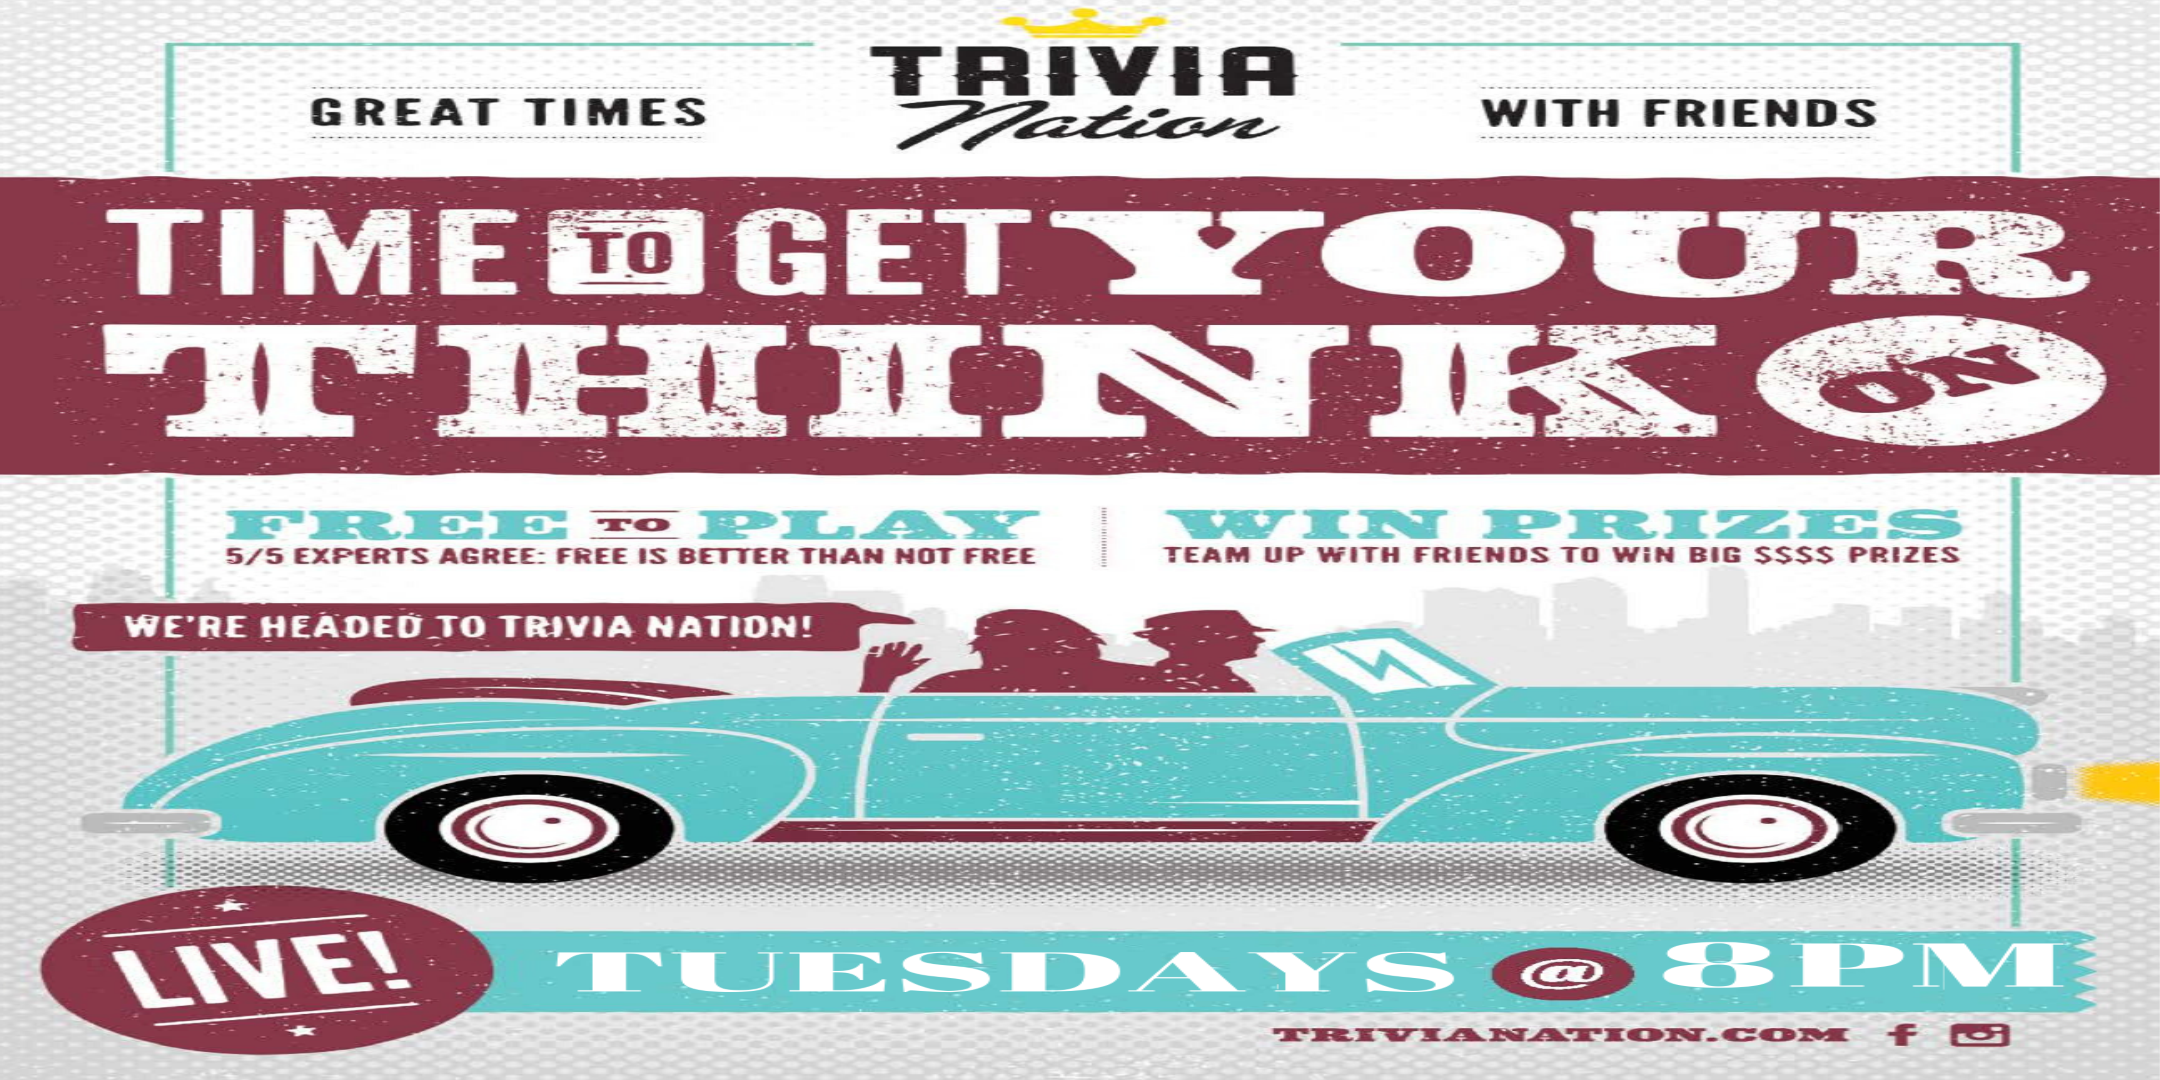 Trivia Nation Free Live Trivia at Irish 31 - Westshore Tuesday's at 8 pm